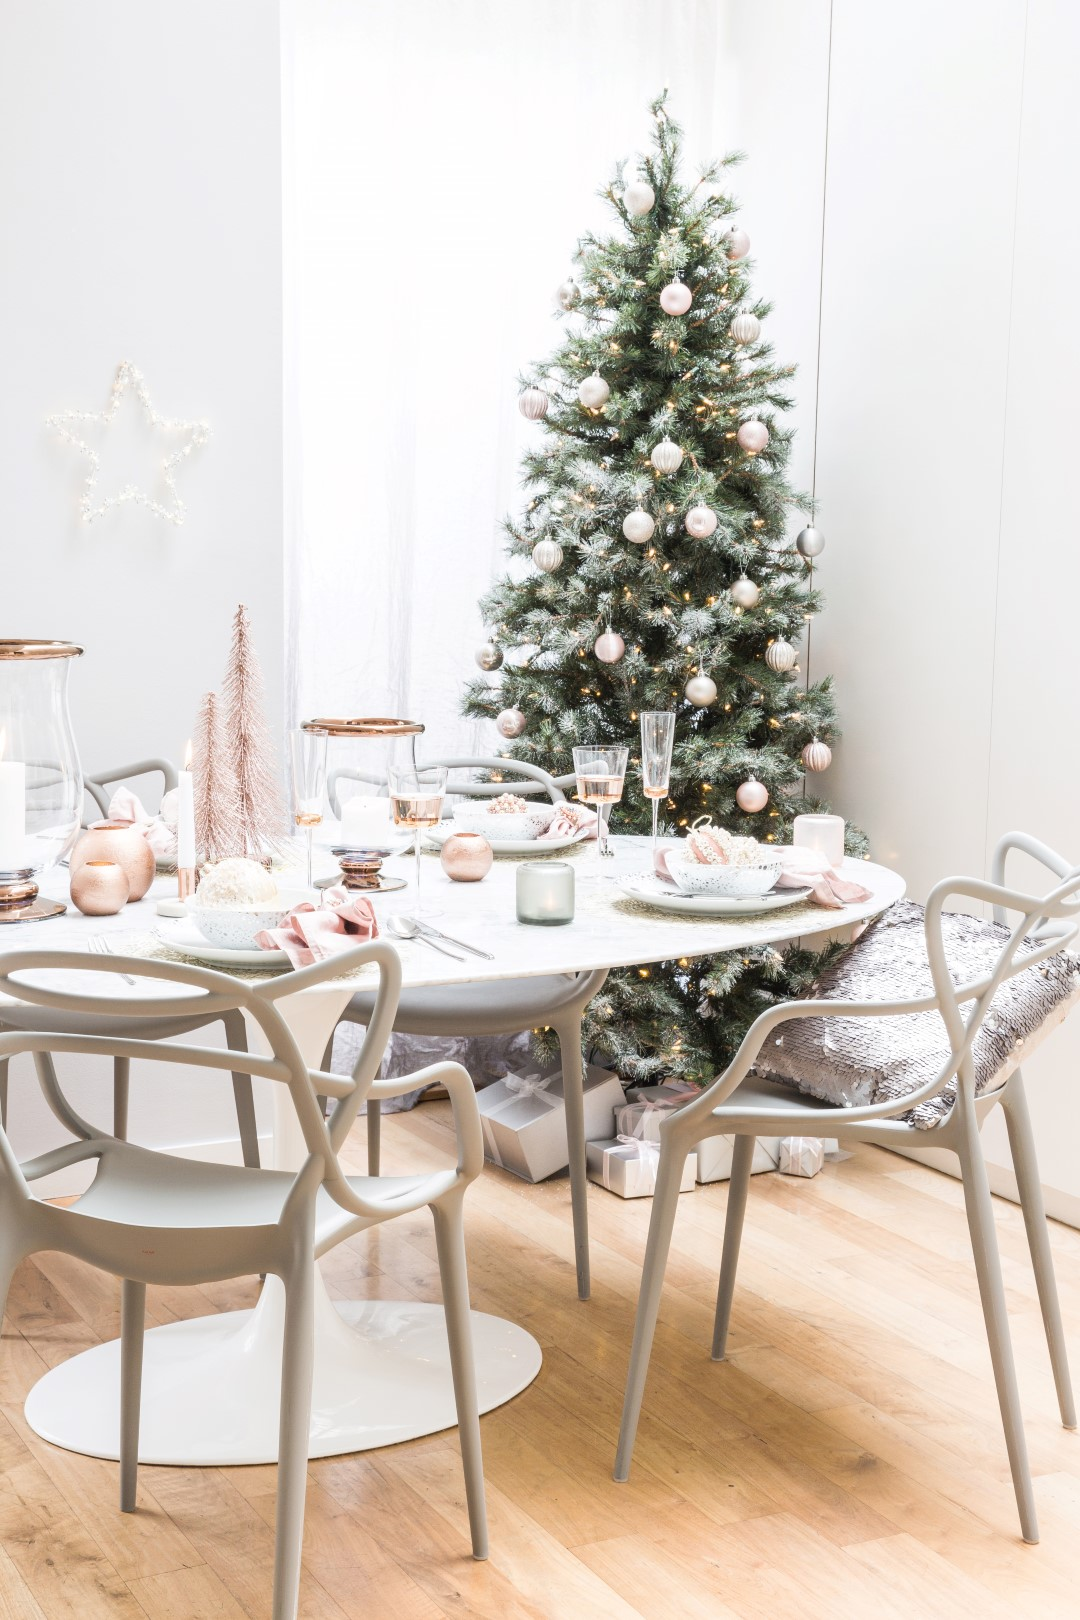 how to decorate your first home for christmas - Decorating Your Home For Christmas